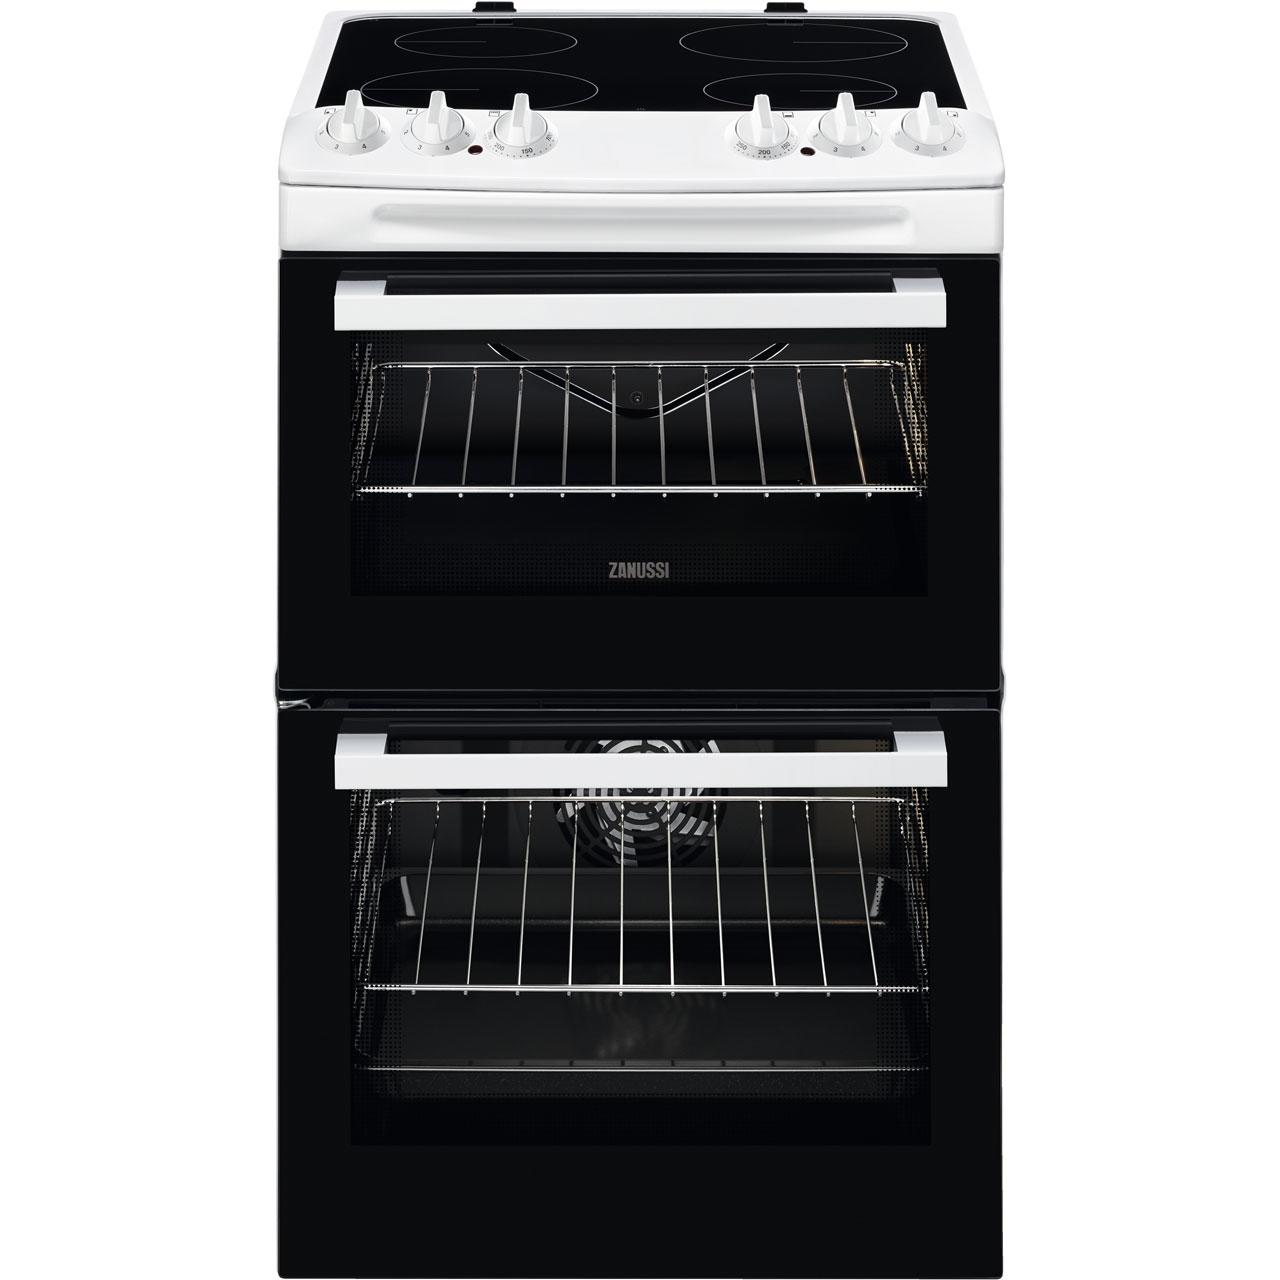 Zanussi Zcv46050wa Electric Cooker With Ceramic Hob